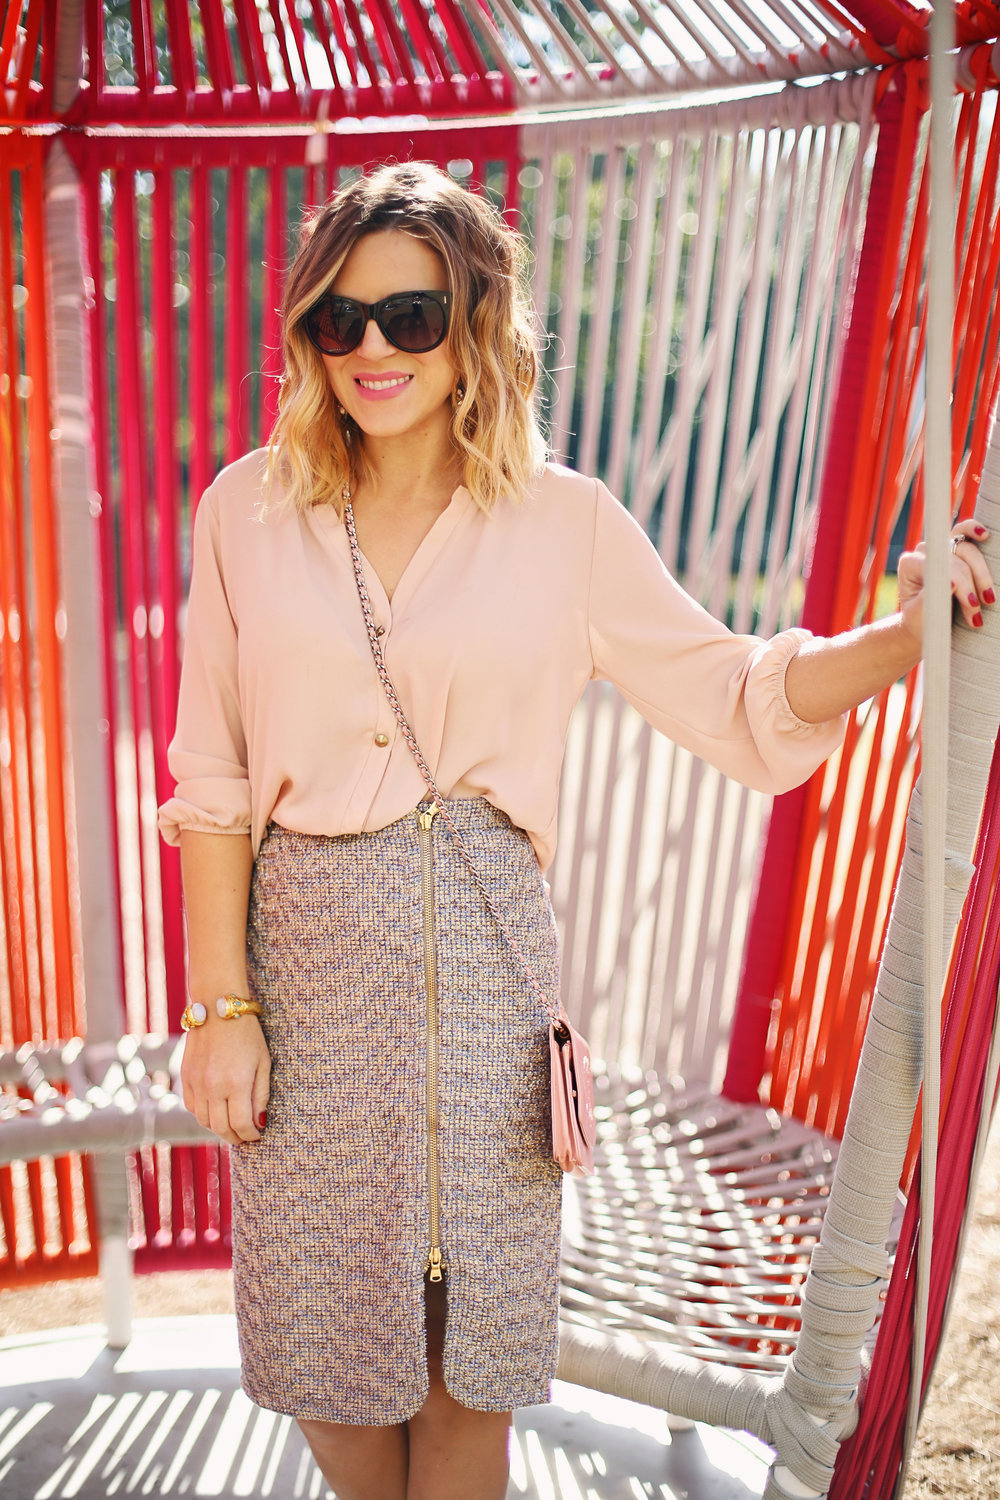 jcrew tweed skirt:julie vos and chanel purse 1.jpg